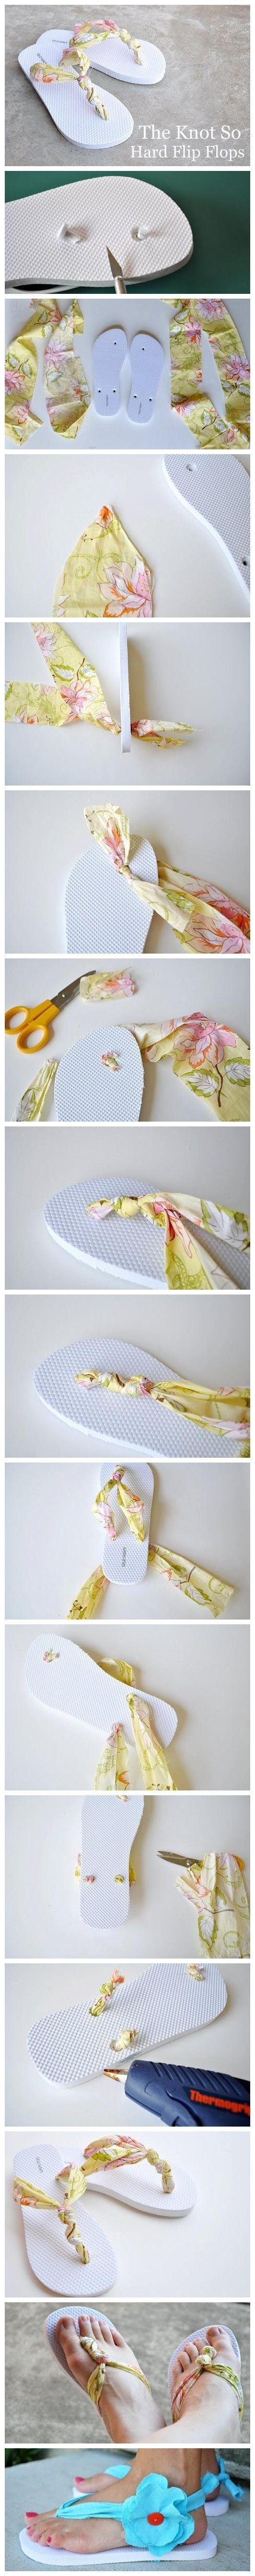 DIY Knot So Hard Flip Flops-I have a pair that the tops are giving out. Doing this to get a little more life out of the soles!